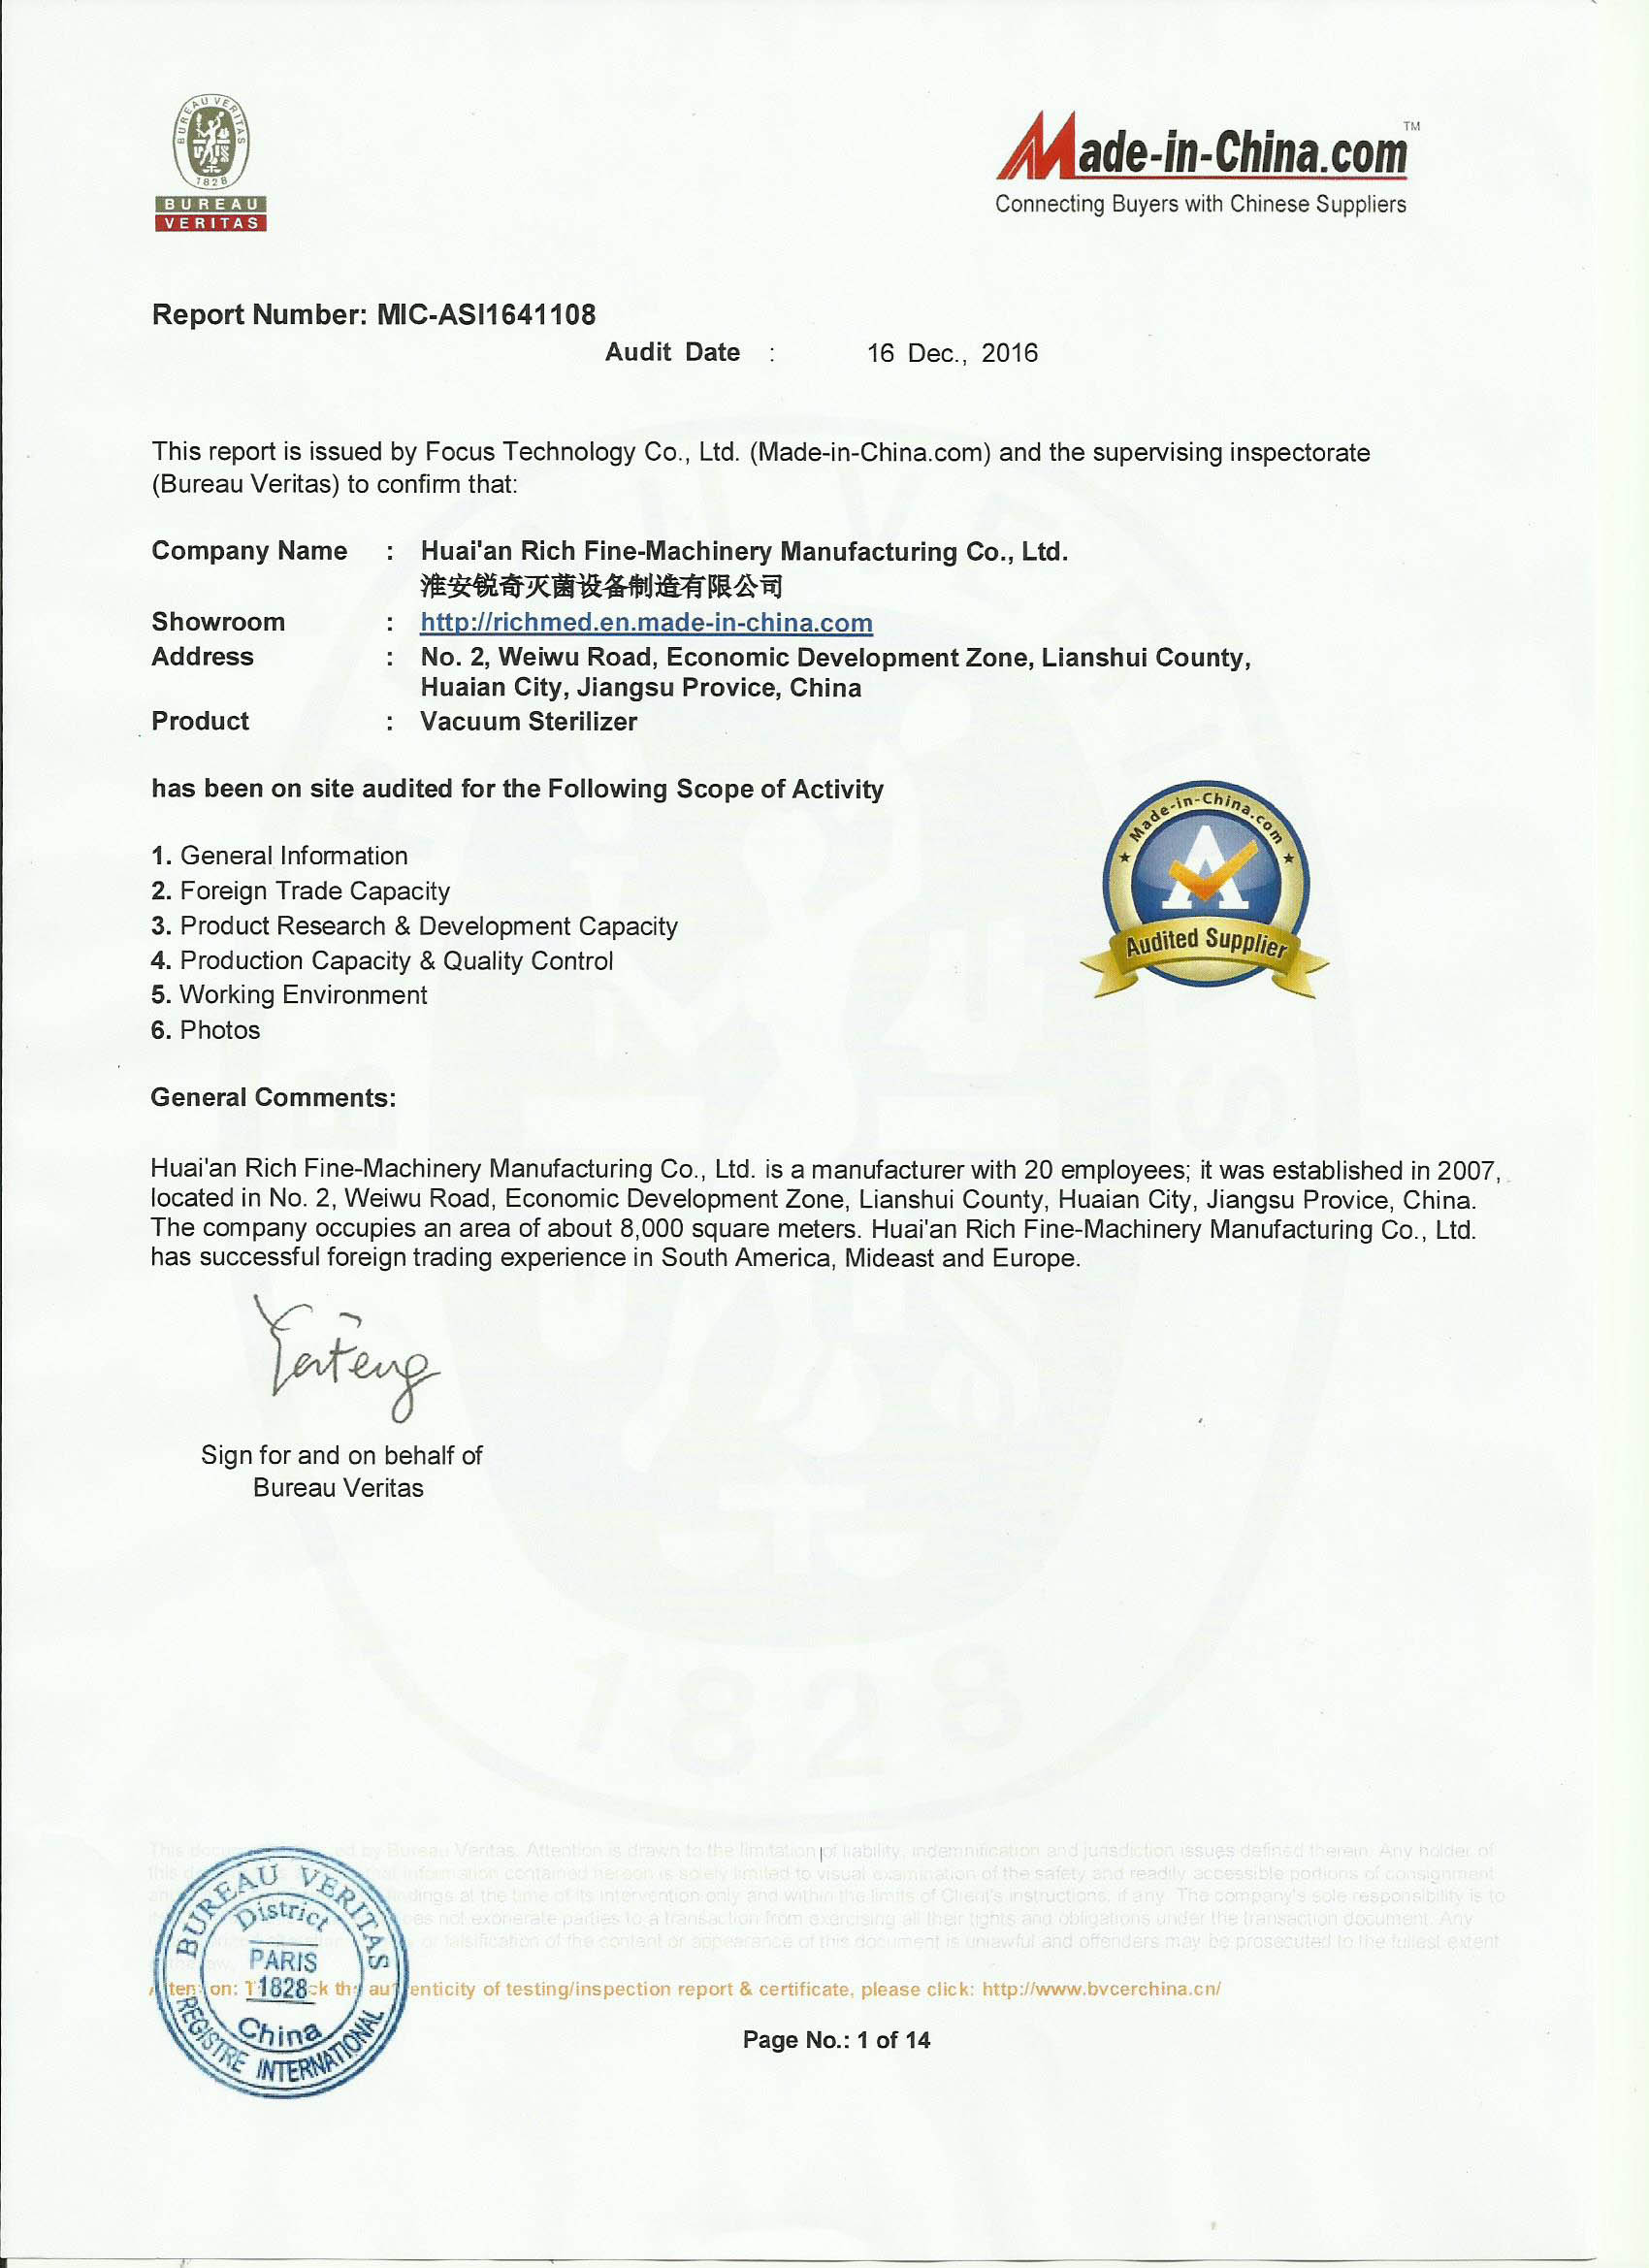 Factory inspection document